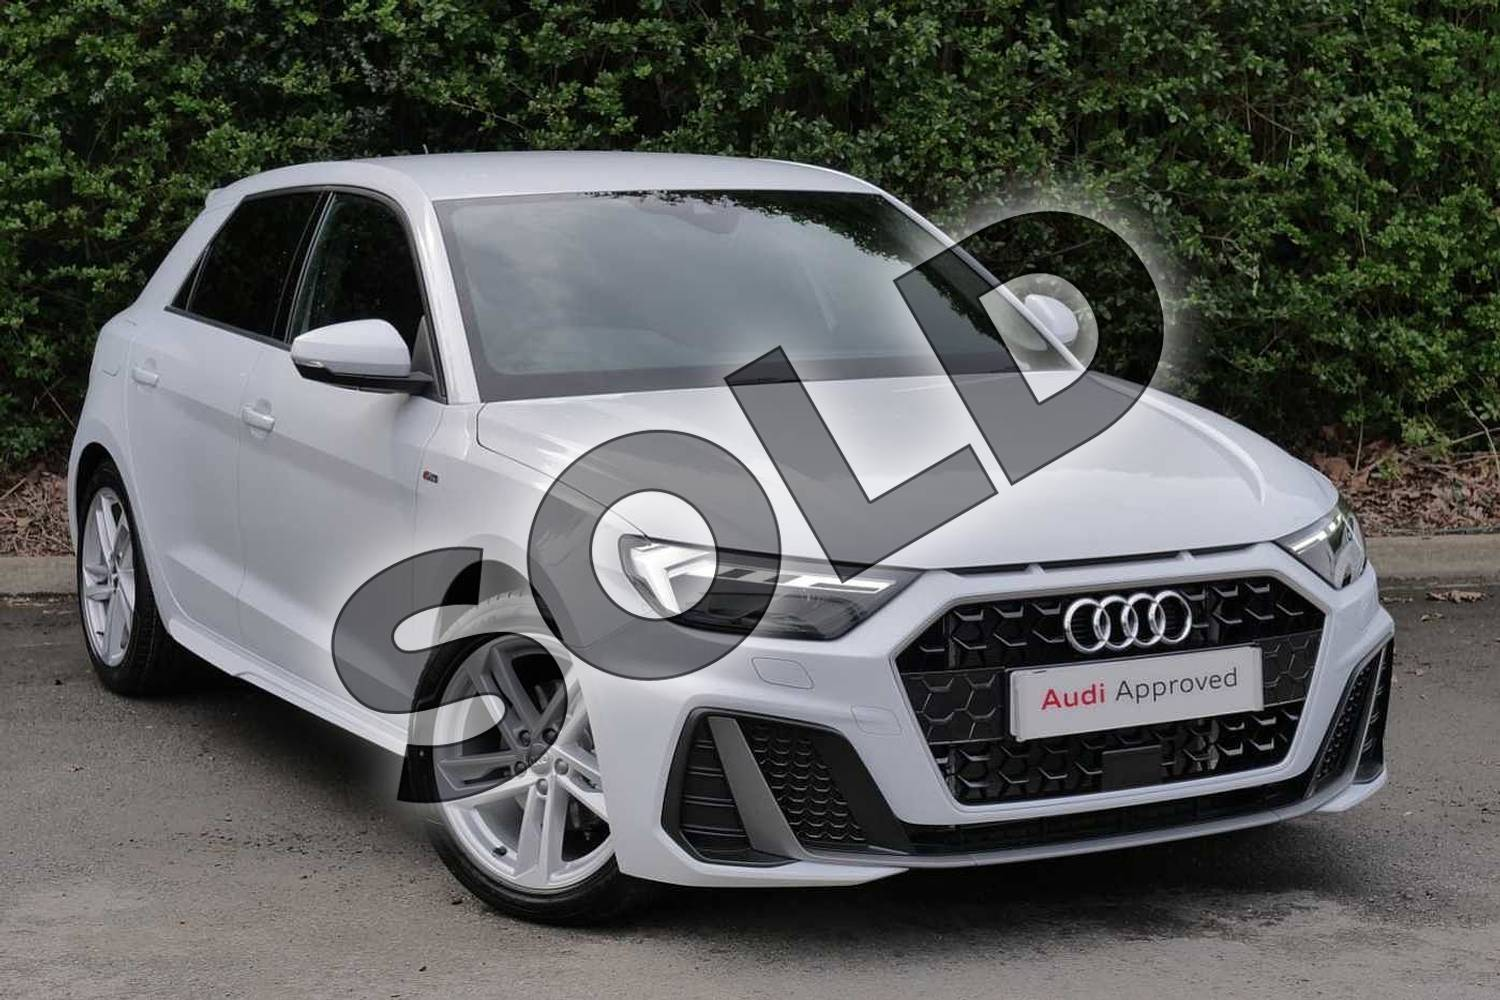 2019 Audi A1 Sportback 35 TFSI S Line 5dr S Tronic in Glacier White Metallic at Worcester Audi